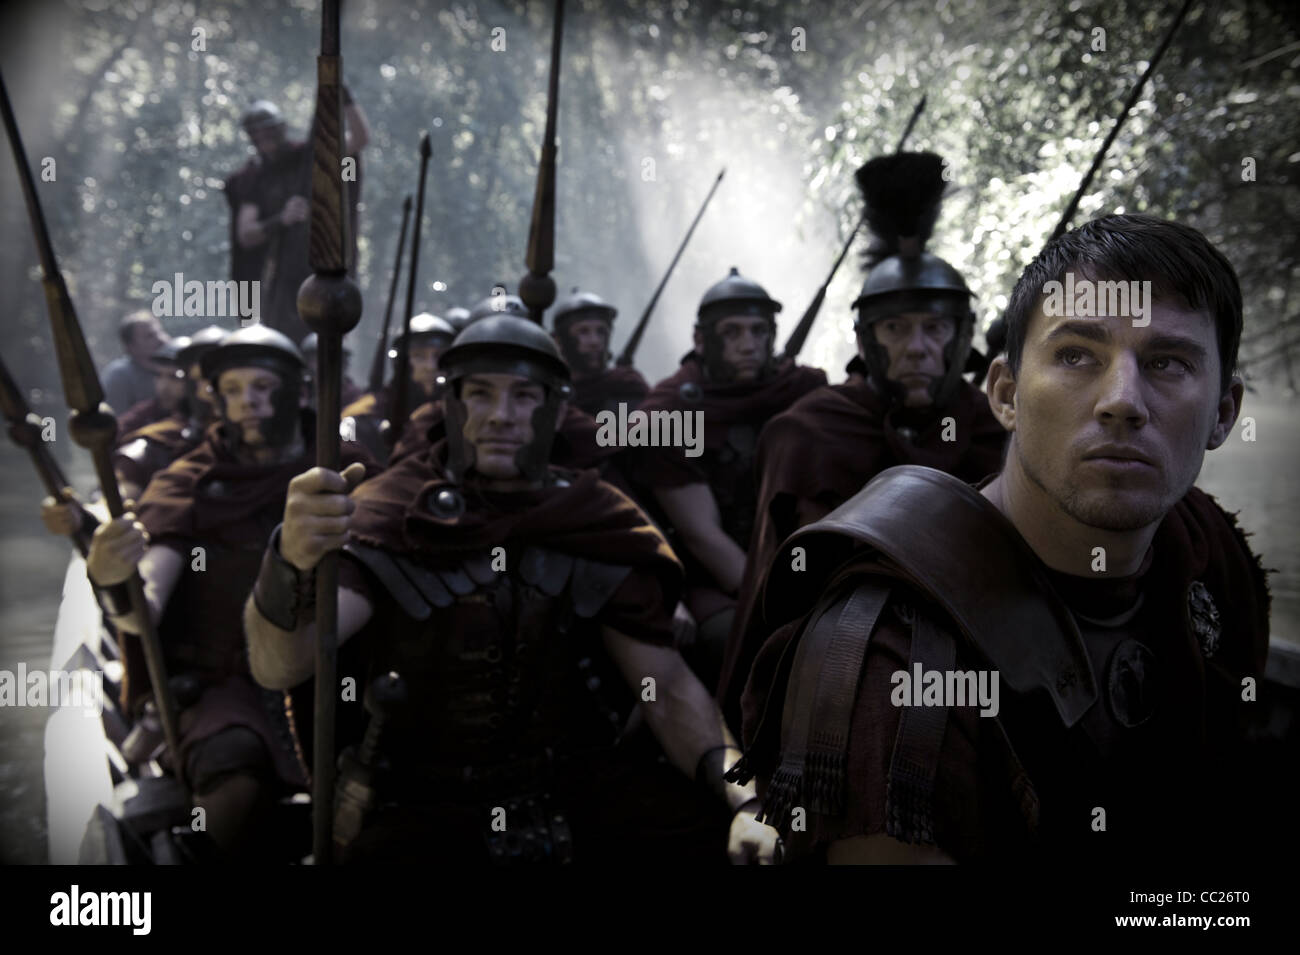 CHANNING TATUM THE EAGLE OF THE NINTH (2010) - Stock Image